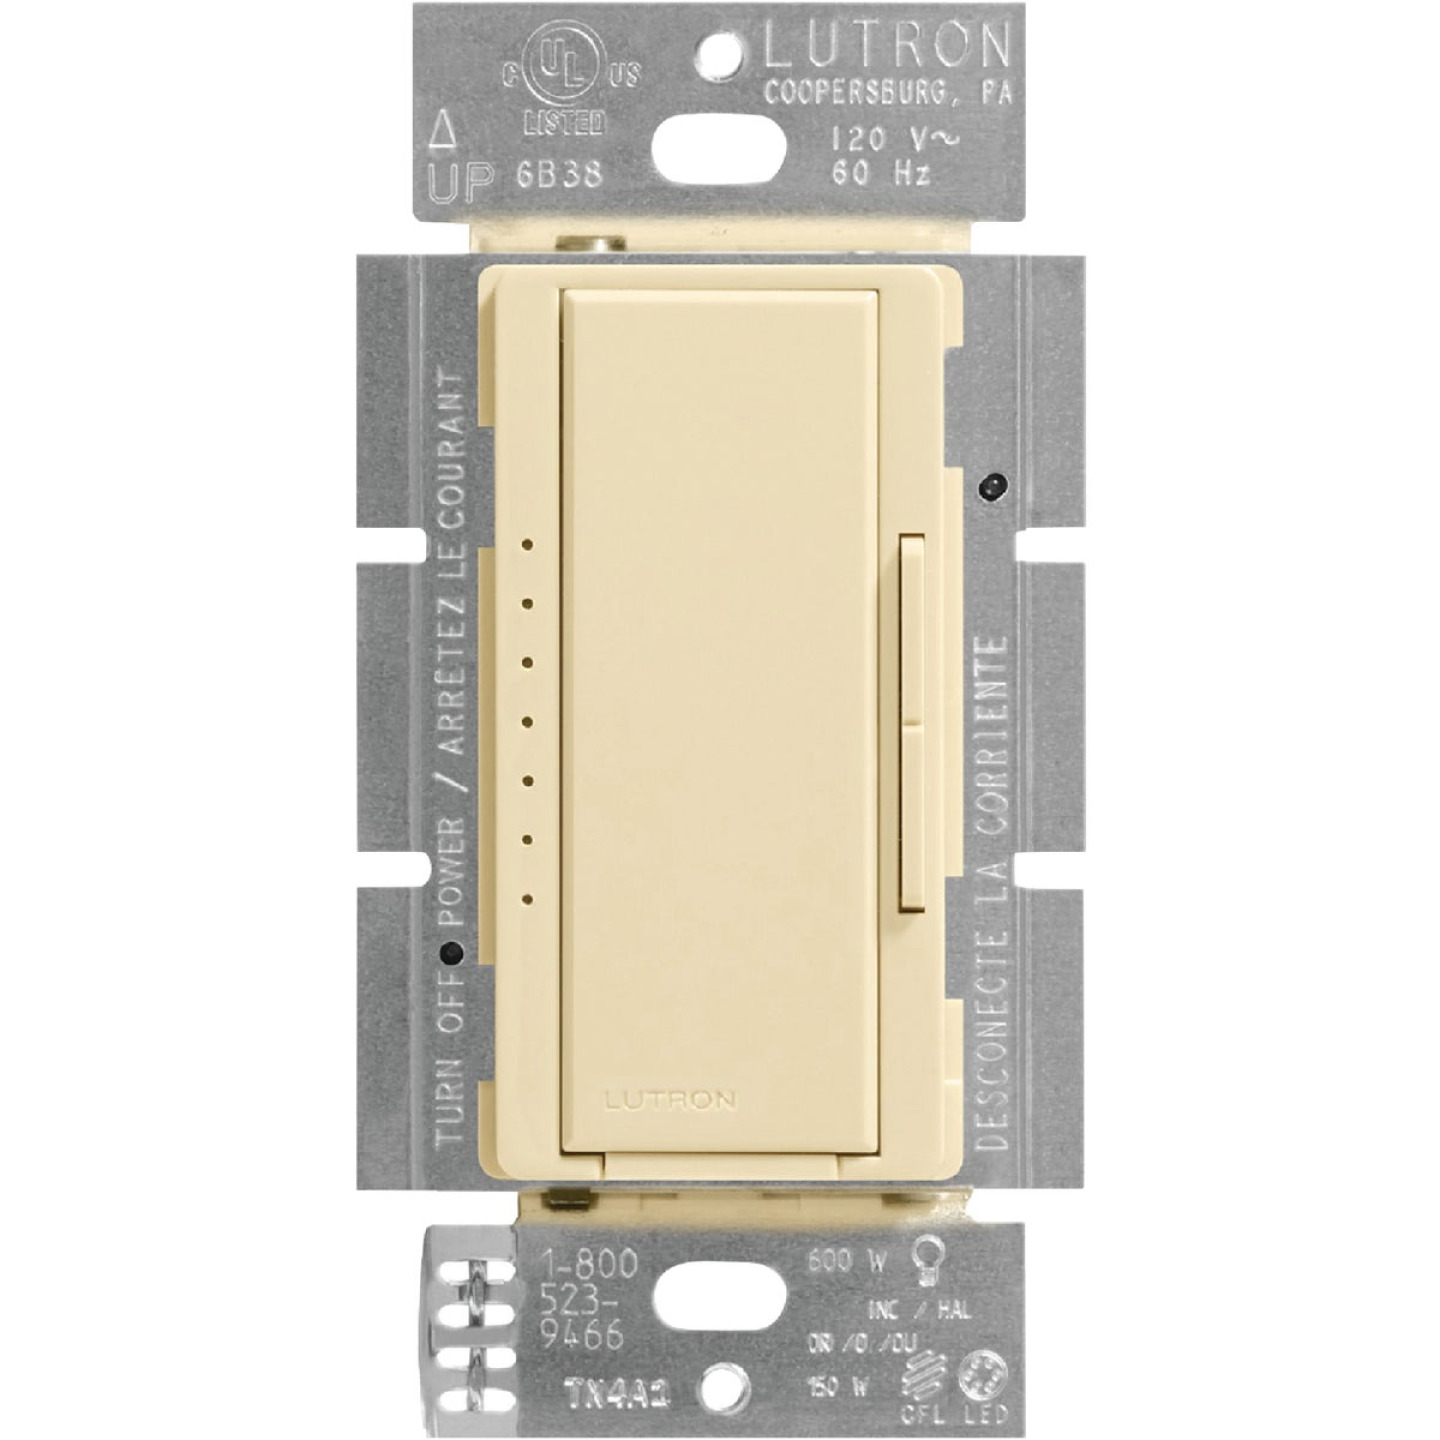 Lutron Maestro CL Ivory 120 VAC Wireless Dimmer Image 3